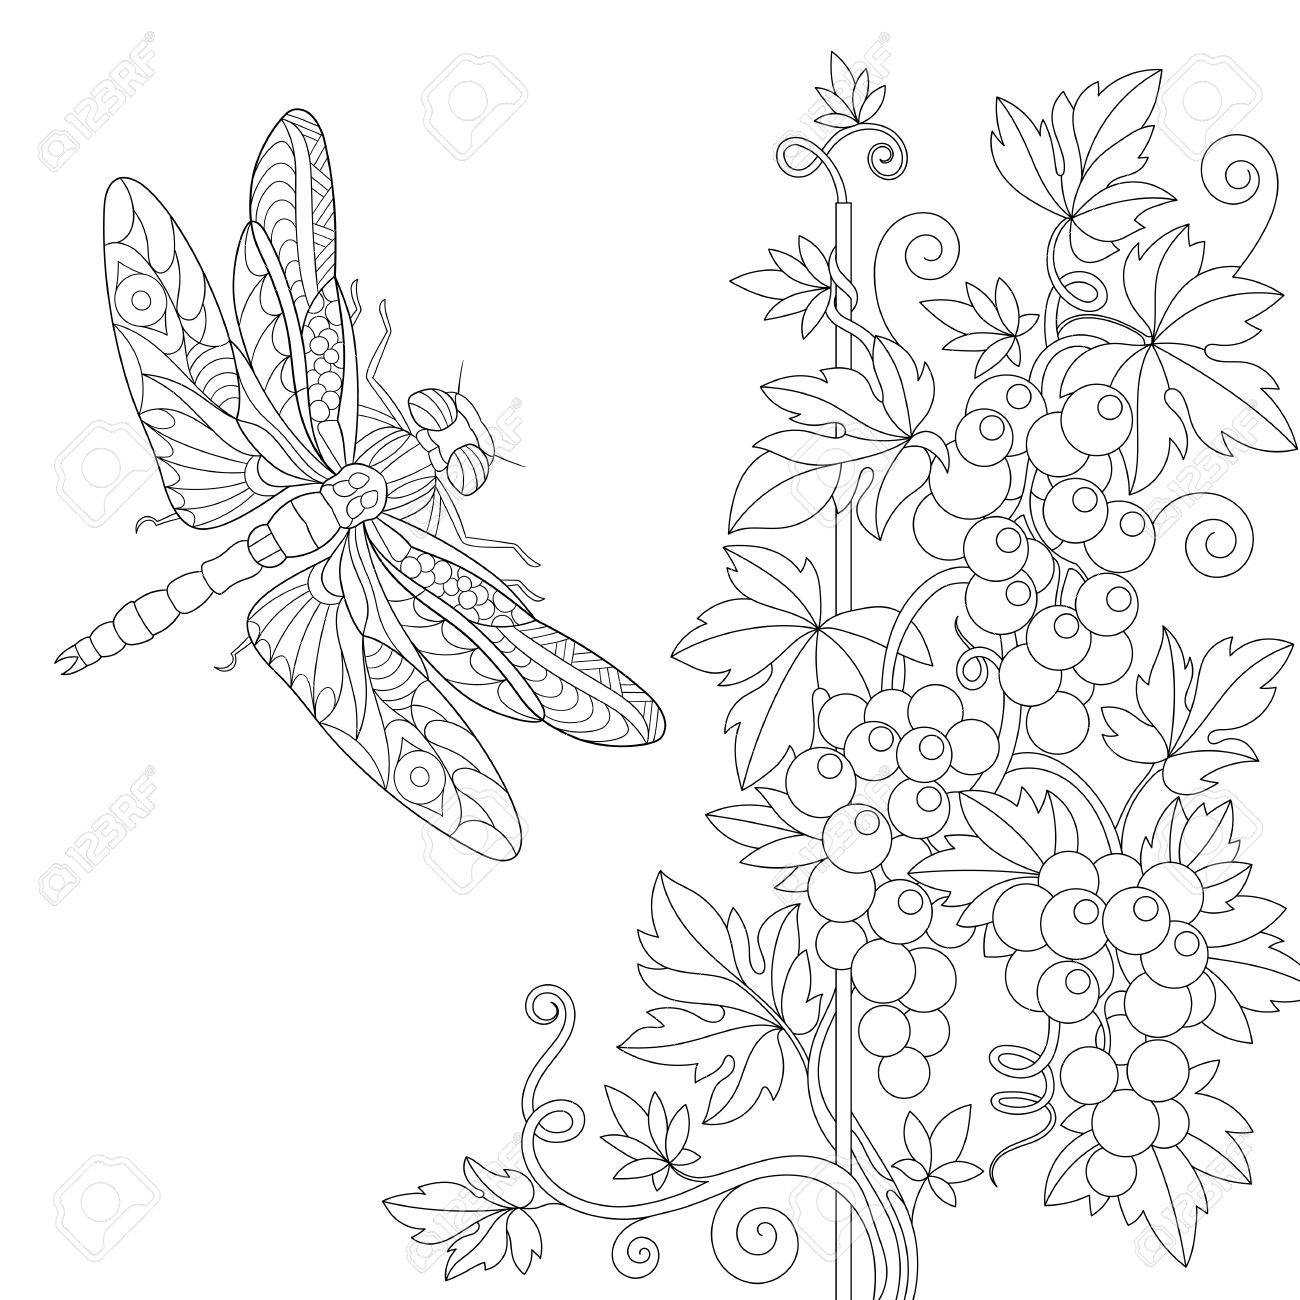 1300x1300 Coloring Page Of Dragonfly And Grape Vine Freehand Sketch Drawing